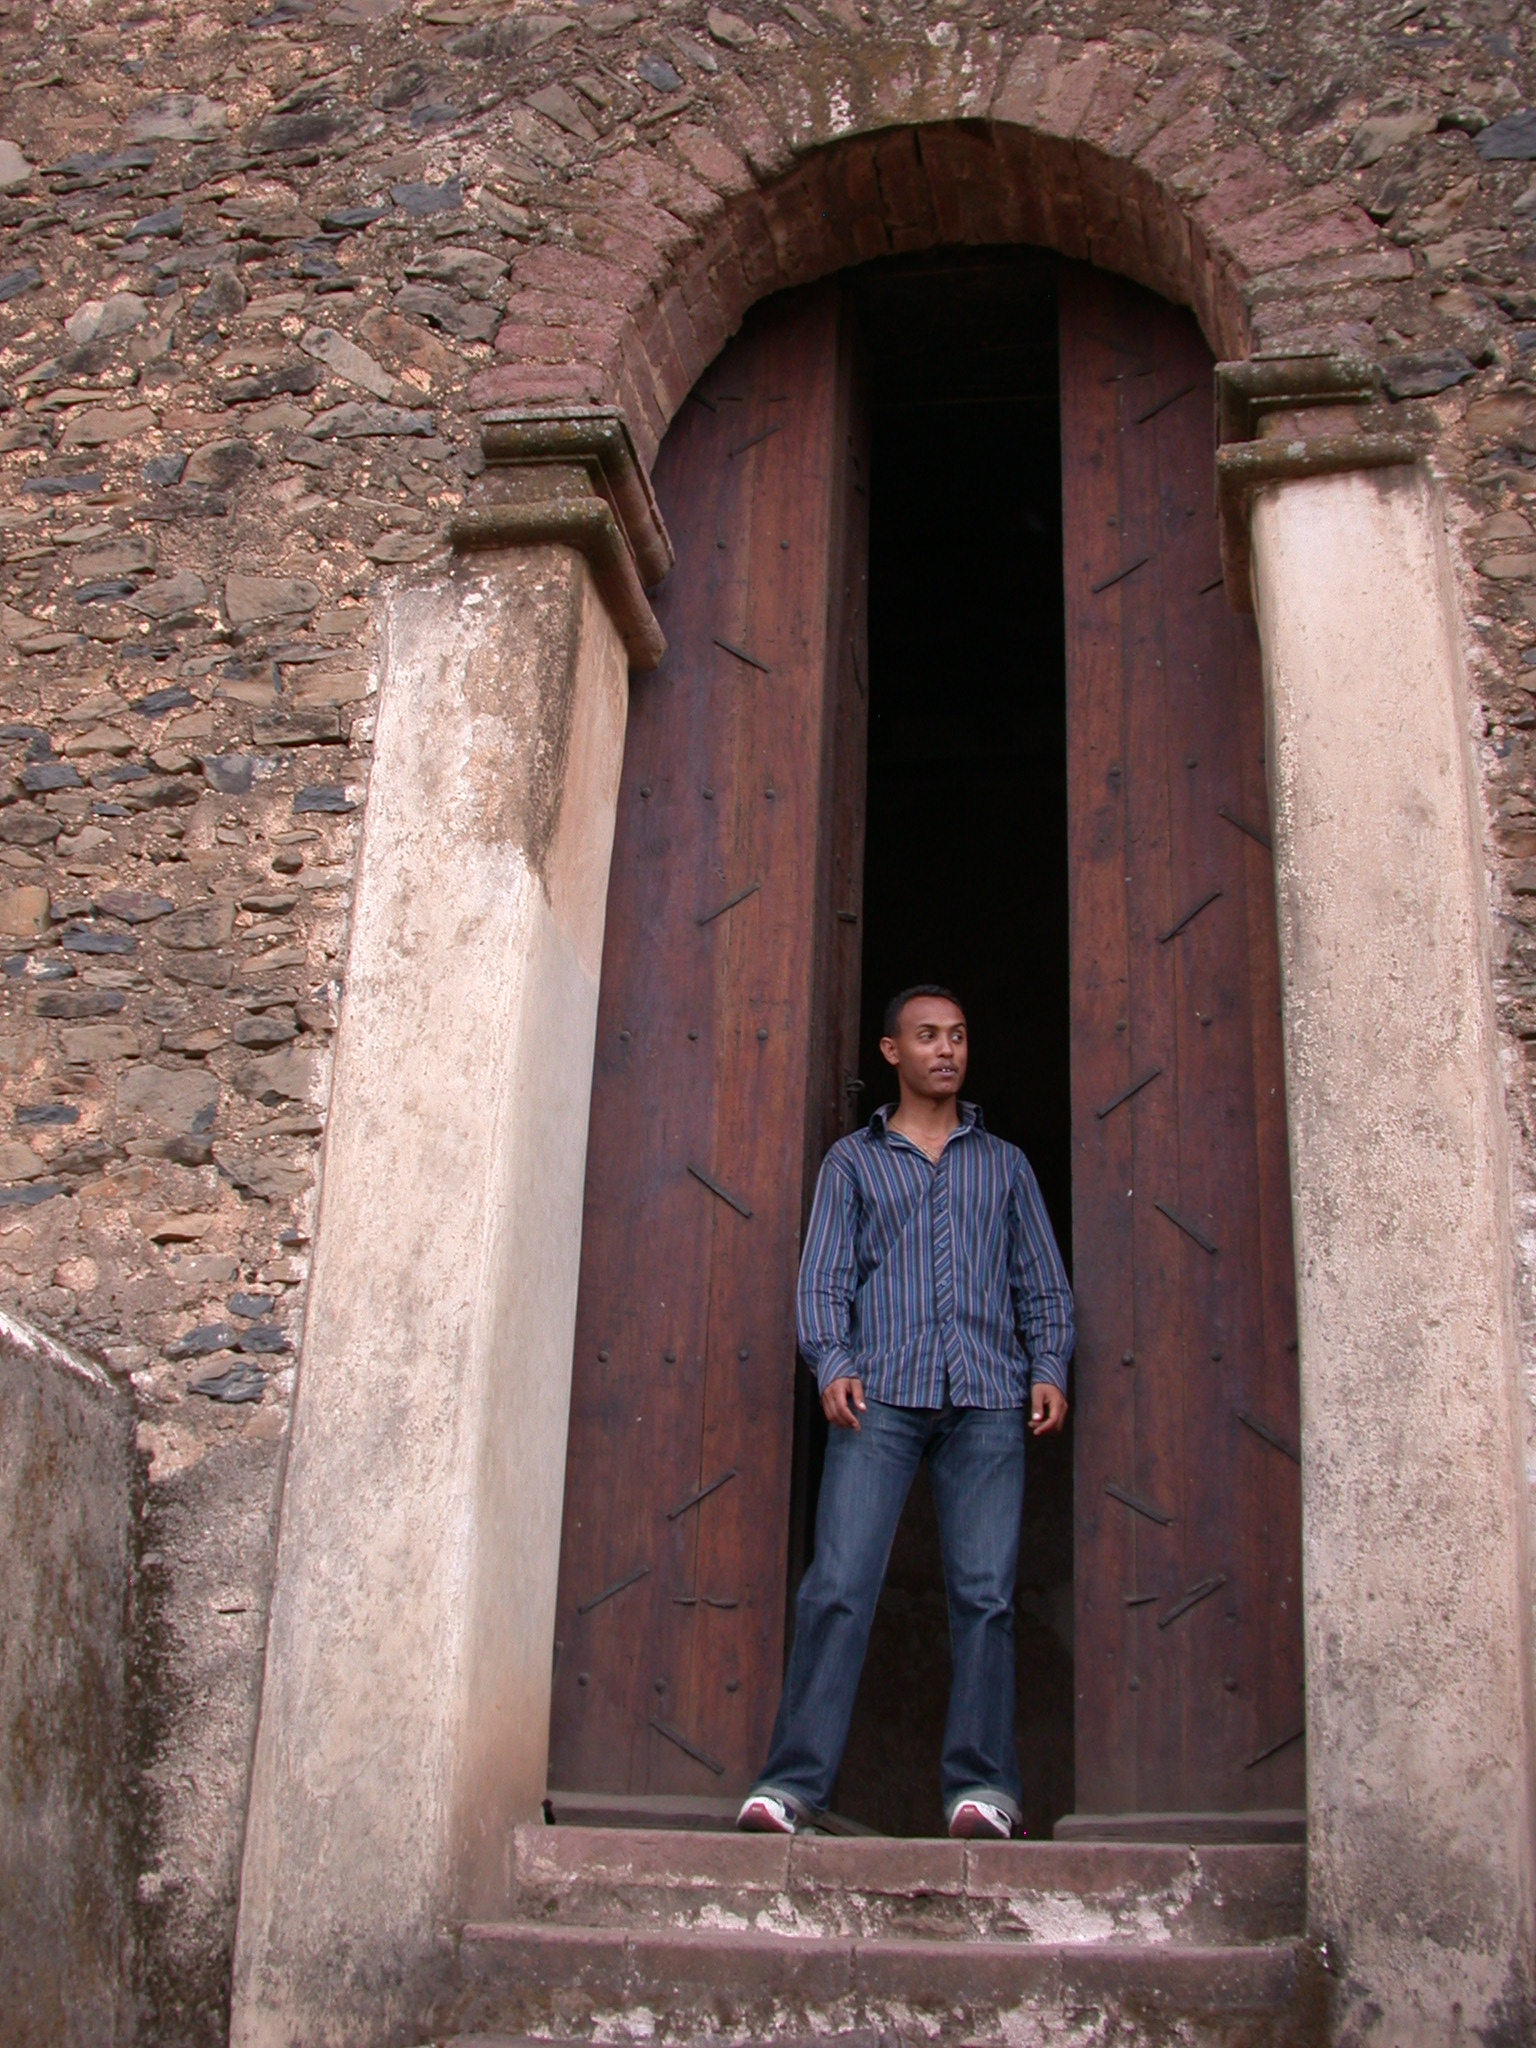 Ethiopian Friend in Front of Wooden Palace Door, Fasil Ghebbi Royal Enclosure, Gonder, Ethiopia